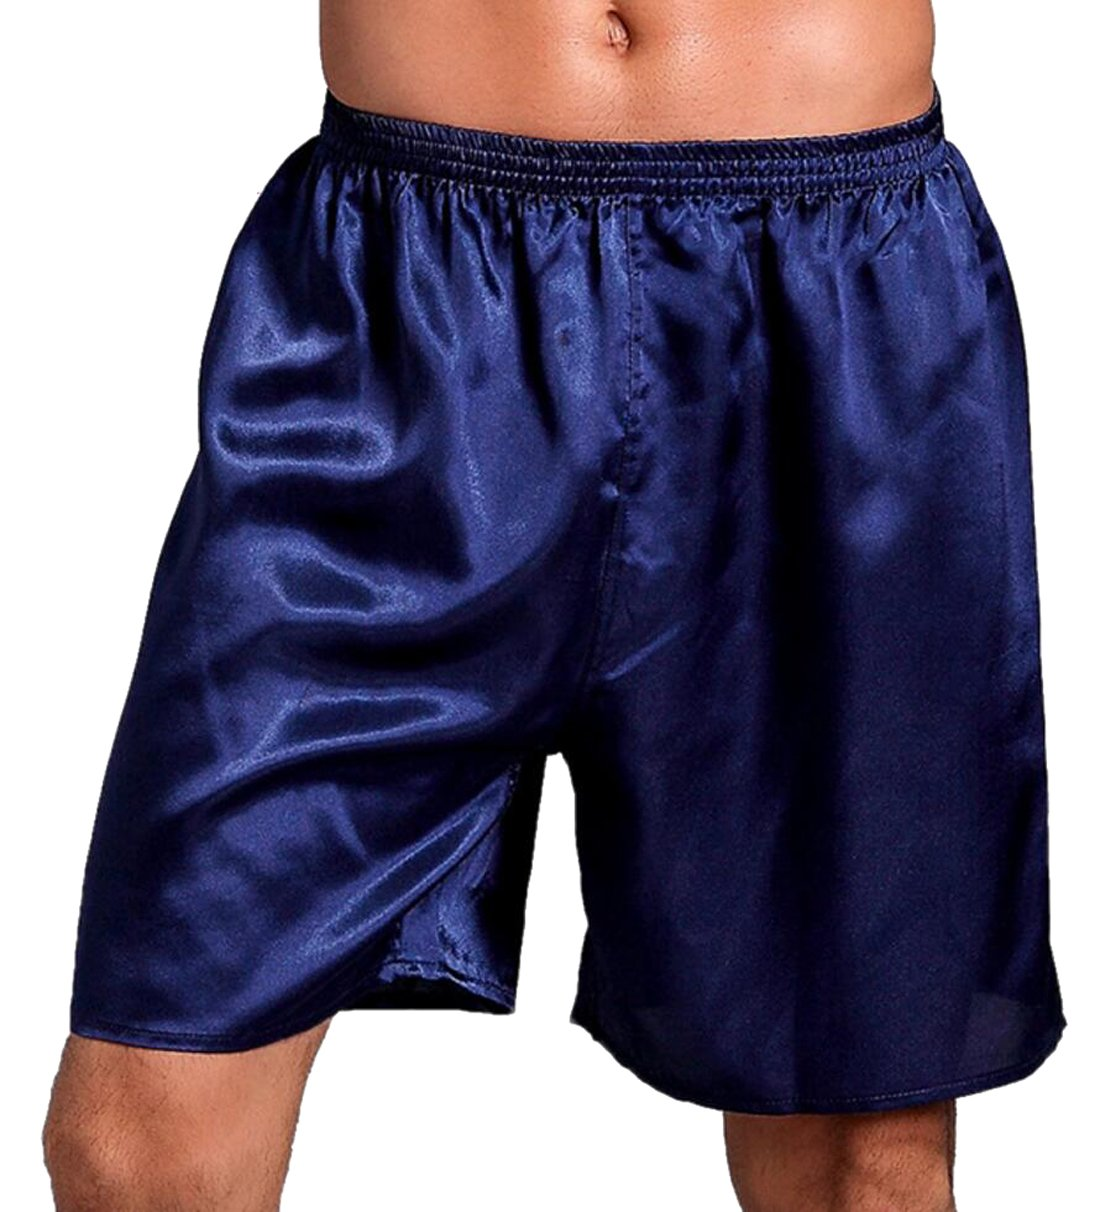 SYTX Mens Comfy Solid Color Silk Satin Boxer Shorts Lounge Shorts Pajama Bottom Blue 2XL